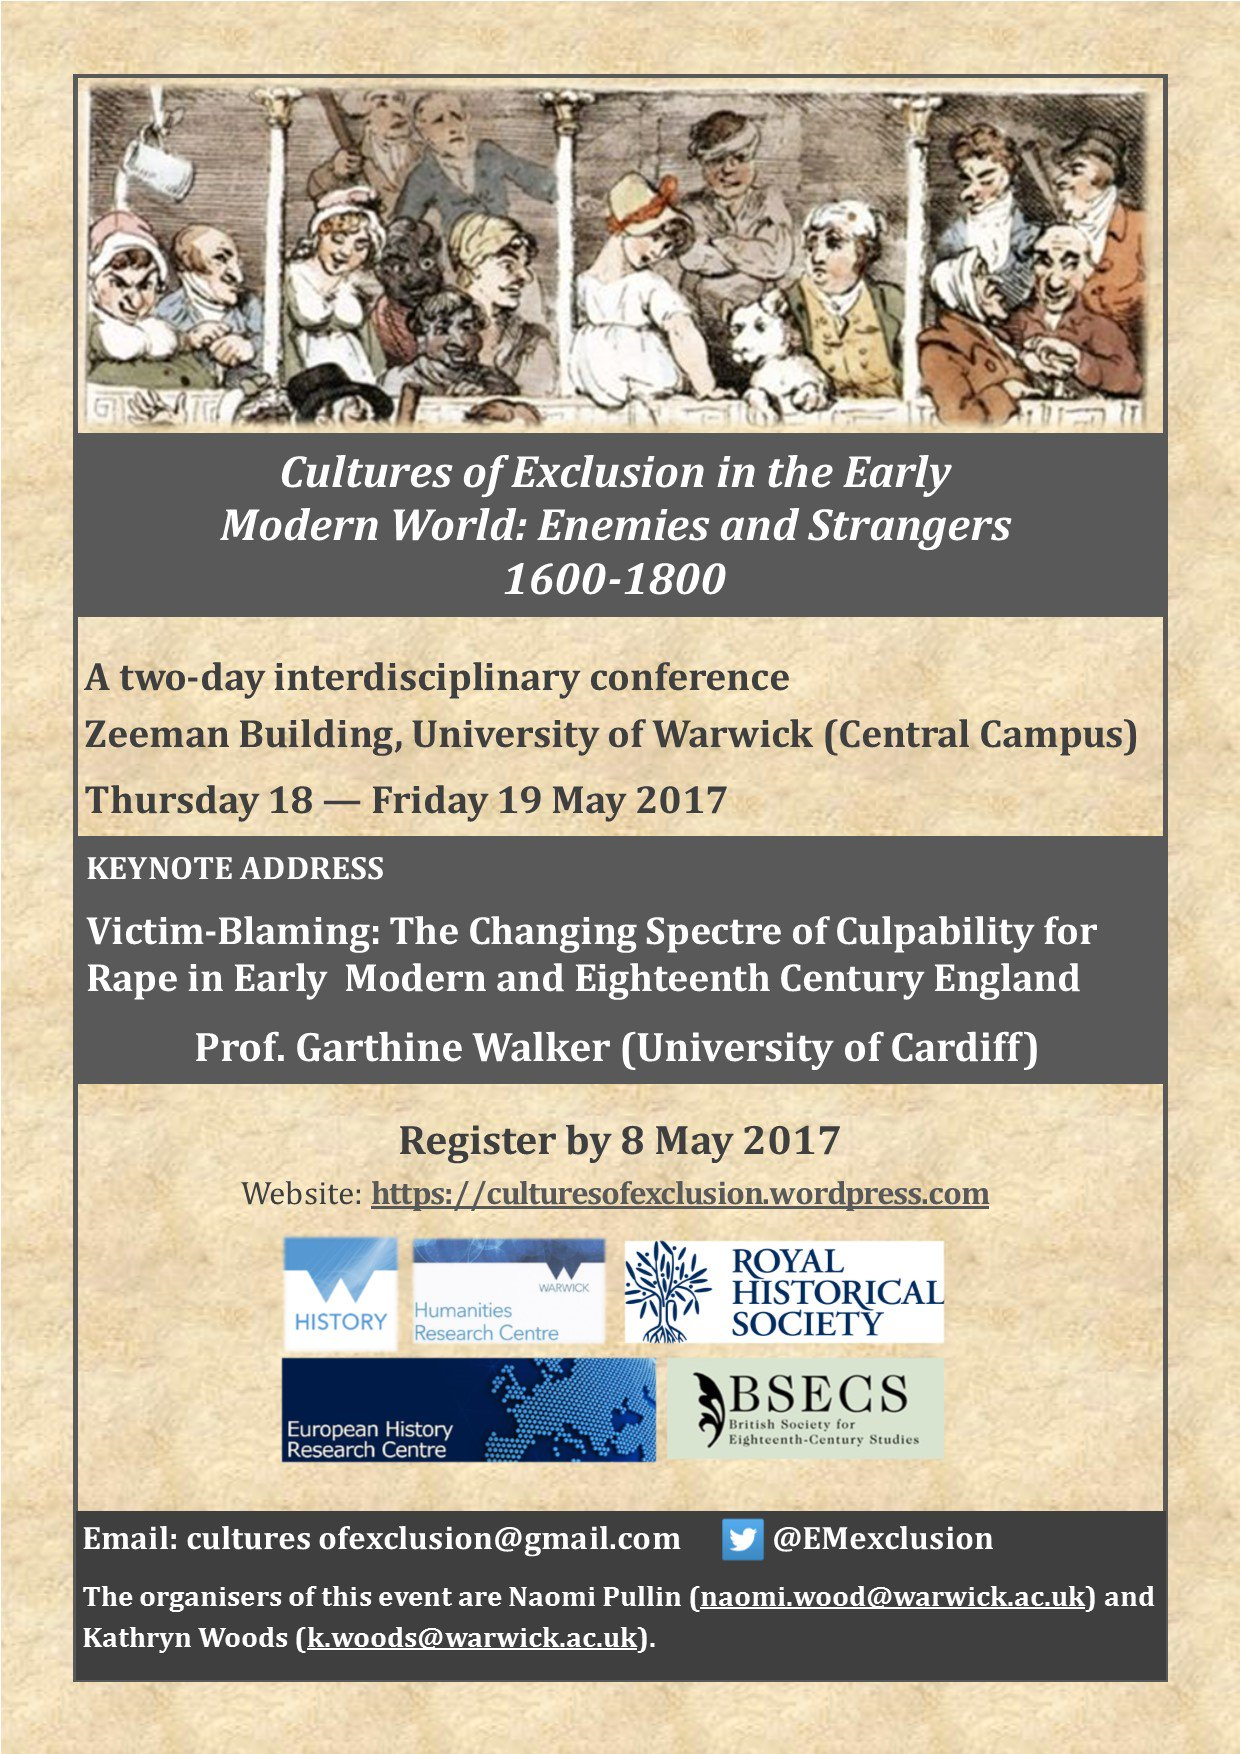 Very excited to be welcoming our delegates today @WarwickHistory for @EMexclusion - it's going to be a great 2 days! https://t.co/f6QAbmL20T https://t.co/26TxKpbdyE